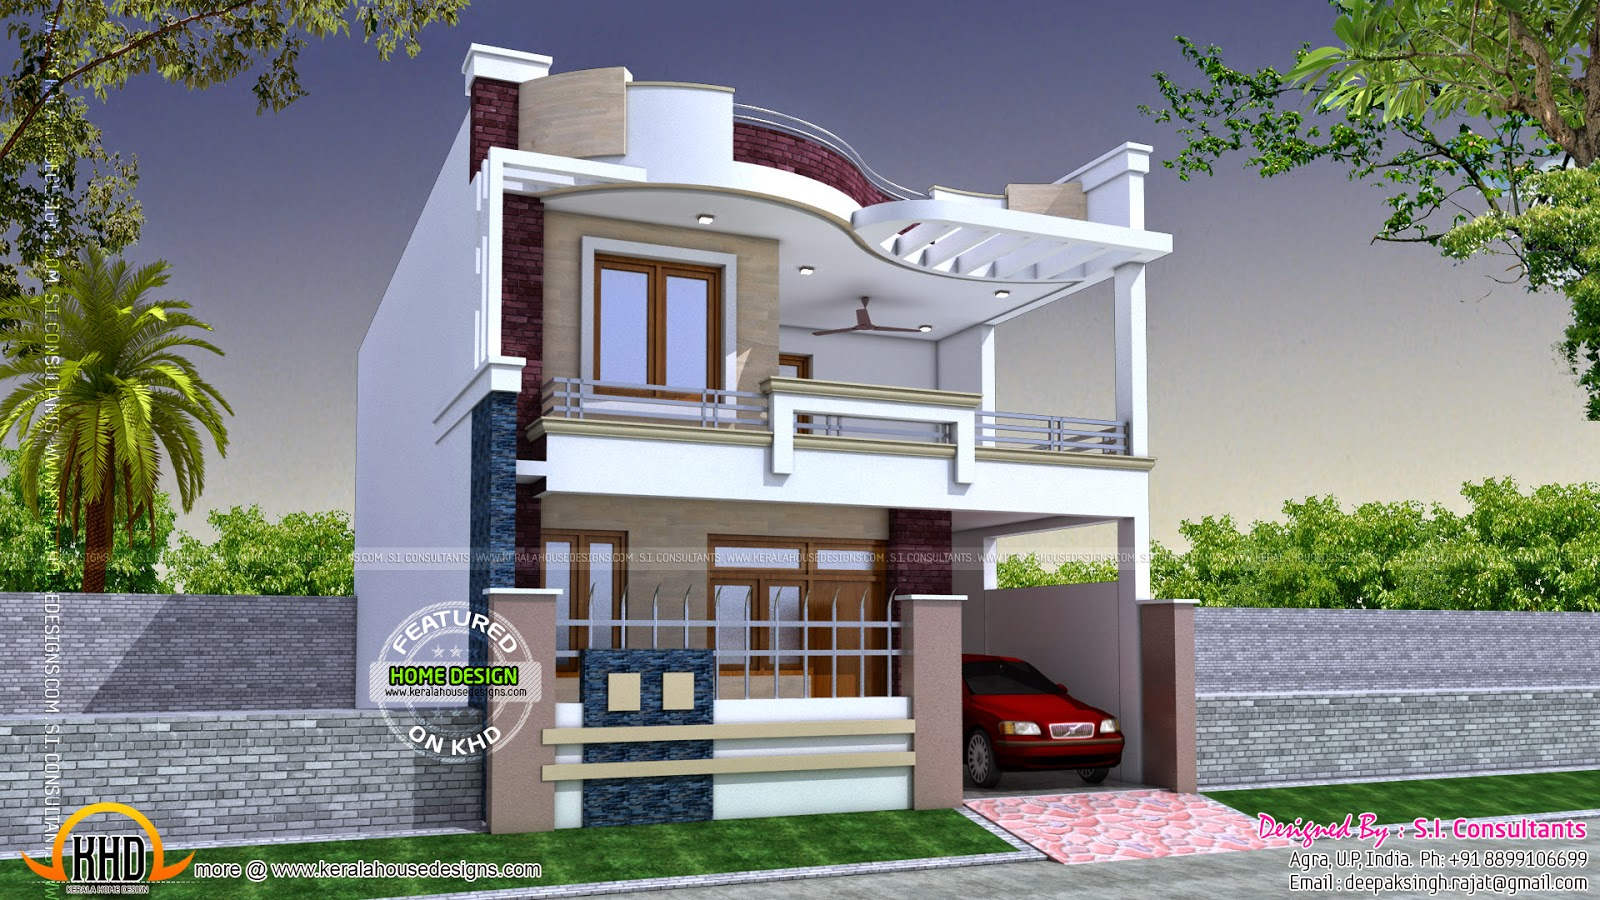 Modern indian home design kerala home design and floor plans for 2 bhk house plans south indian style